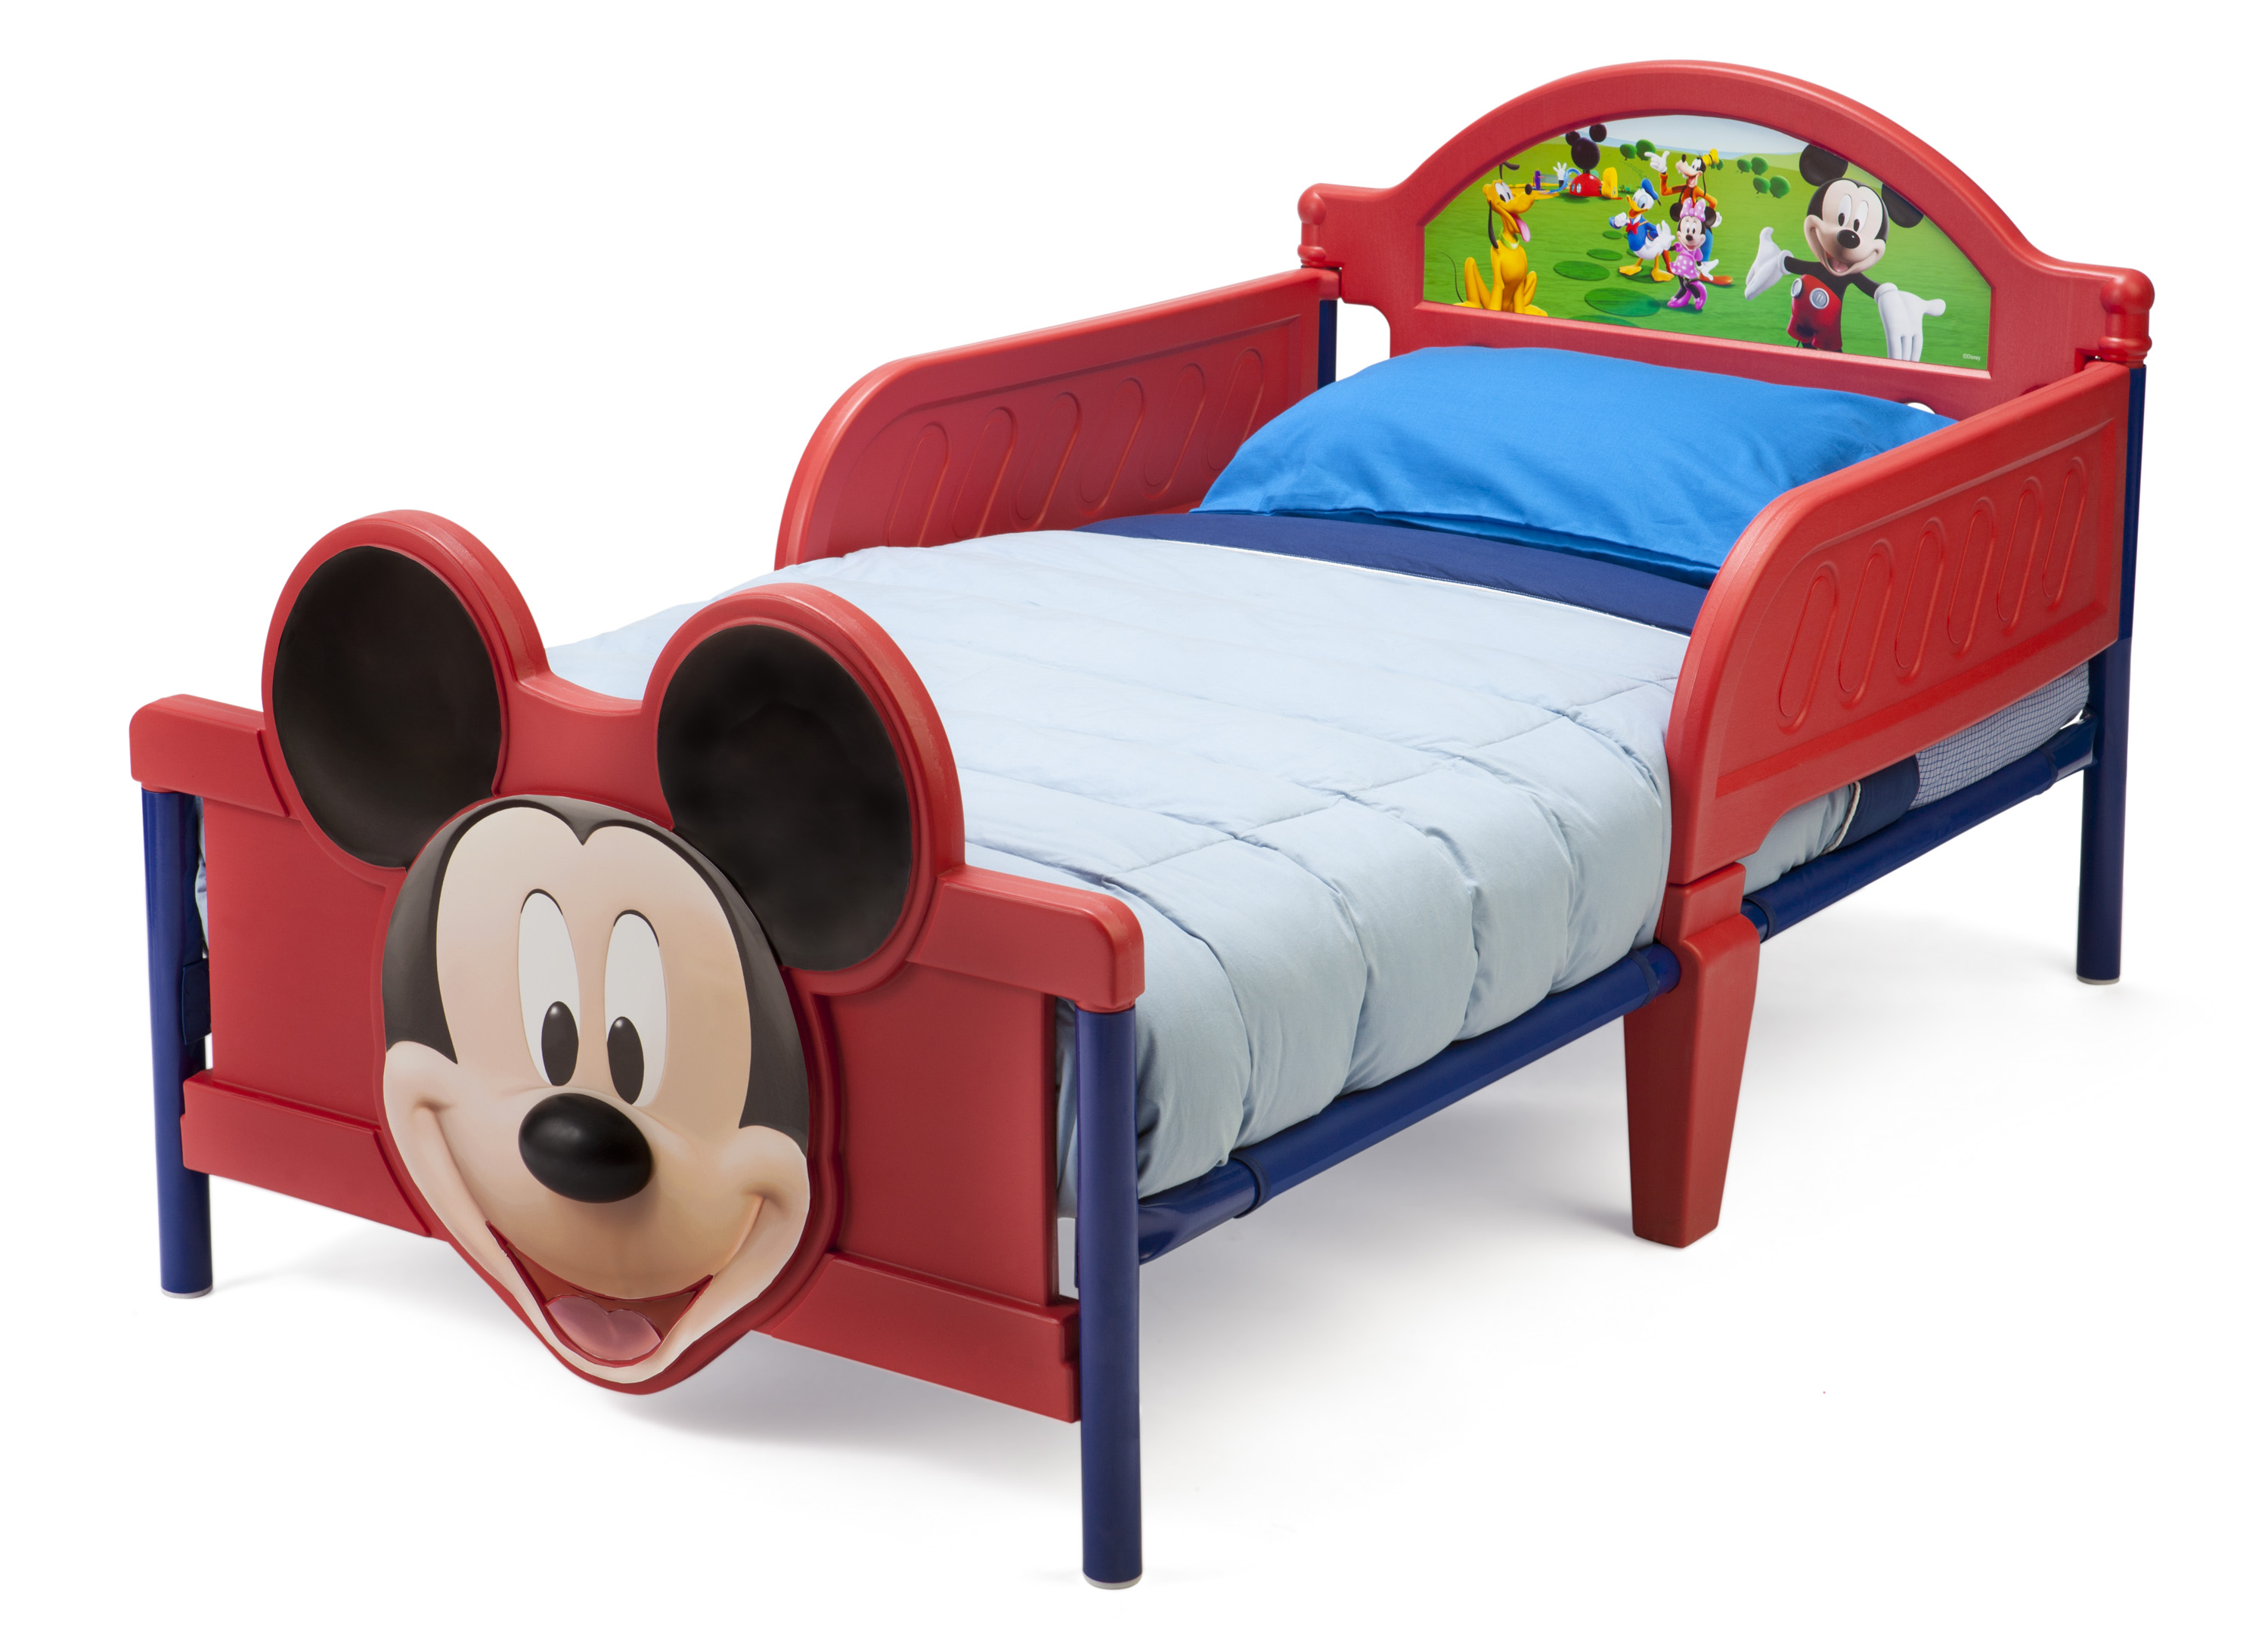 kinderbett jugendbett kinderm bel disney 70x140 bett kinder minnie cars frozen ebay. Black Bedroom Furniture Sets. Home Design Ideas